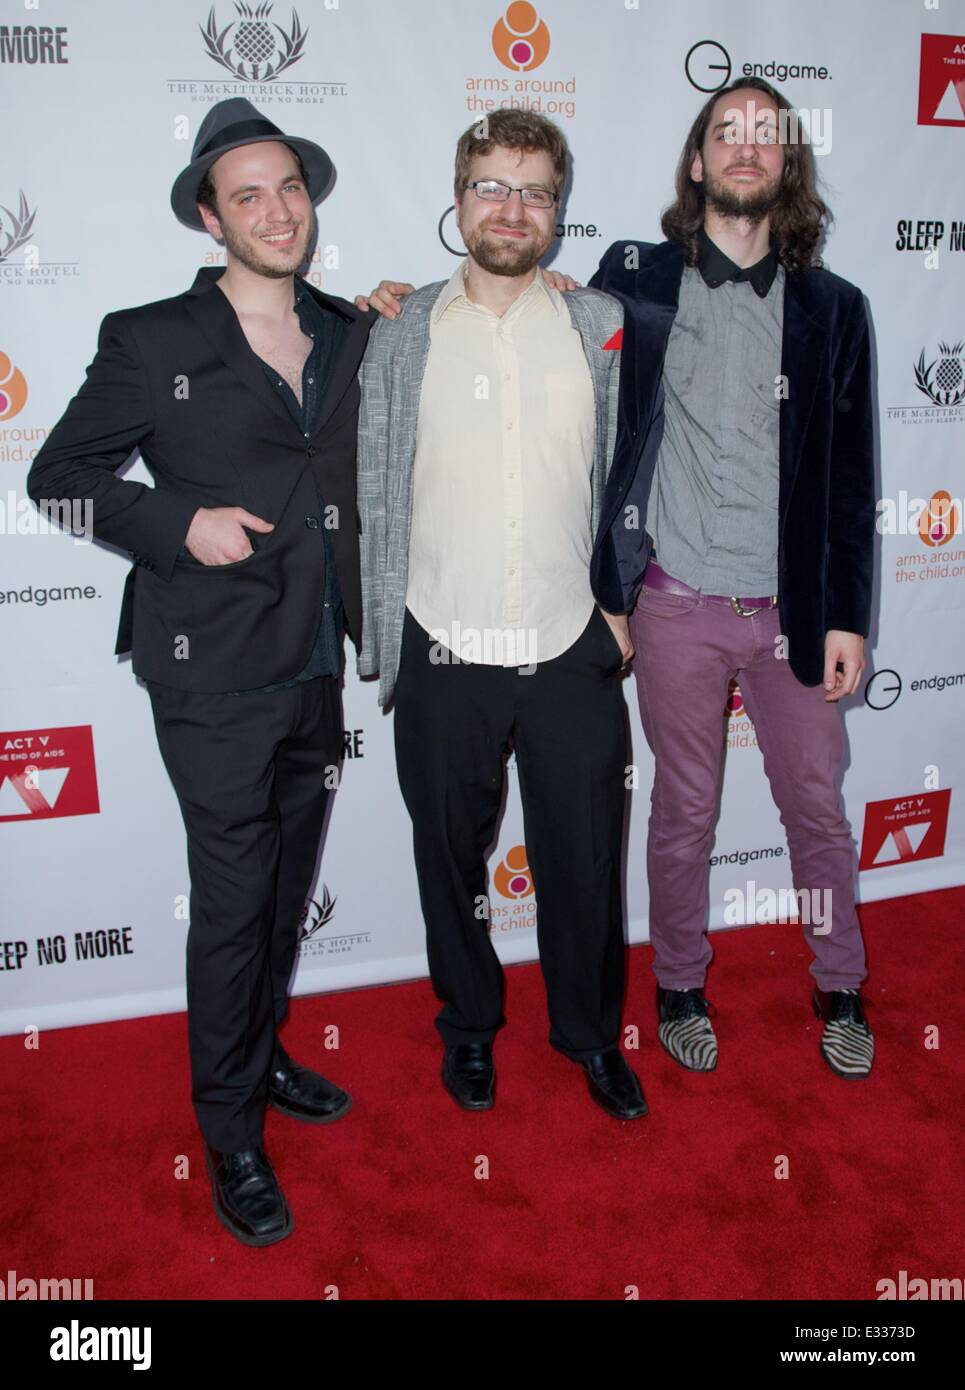 EndGame: The Global Campaign to defeat AIDS, TB And Malaria charity event at The McKittrick Hotel  Featuring: King - Stock Image